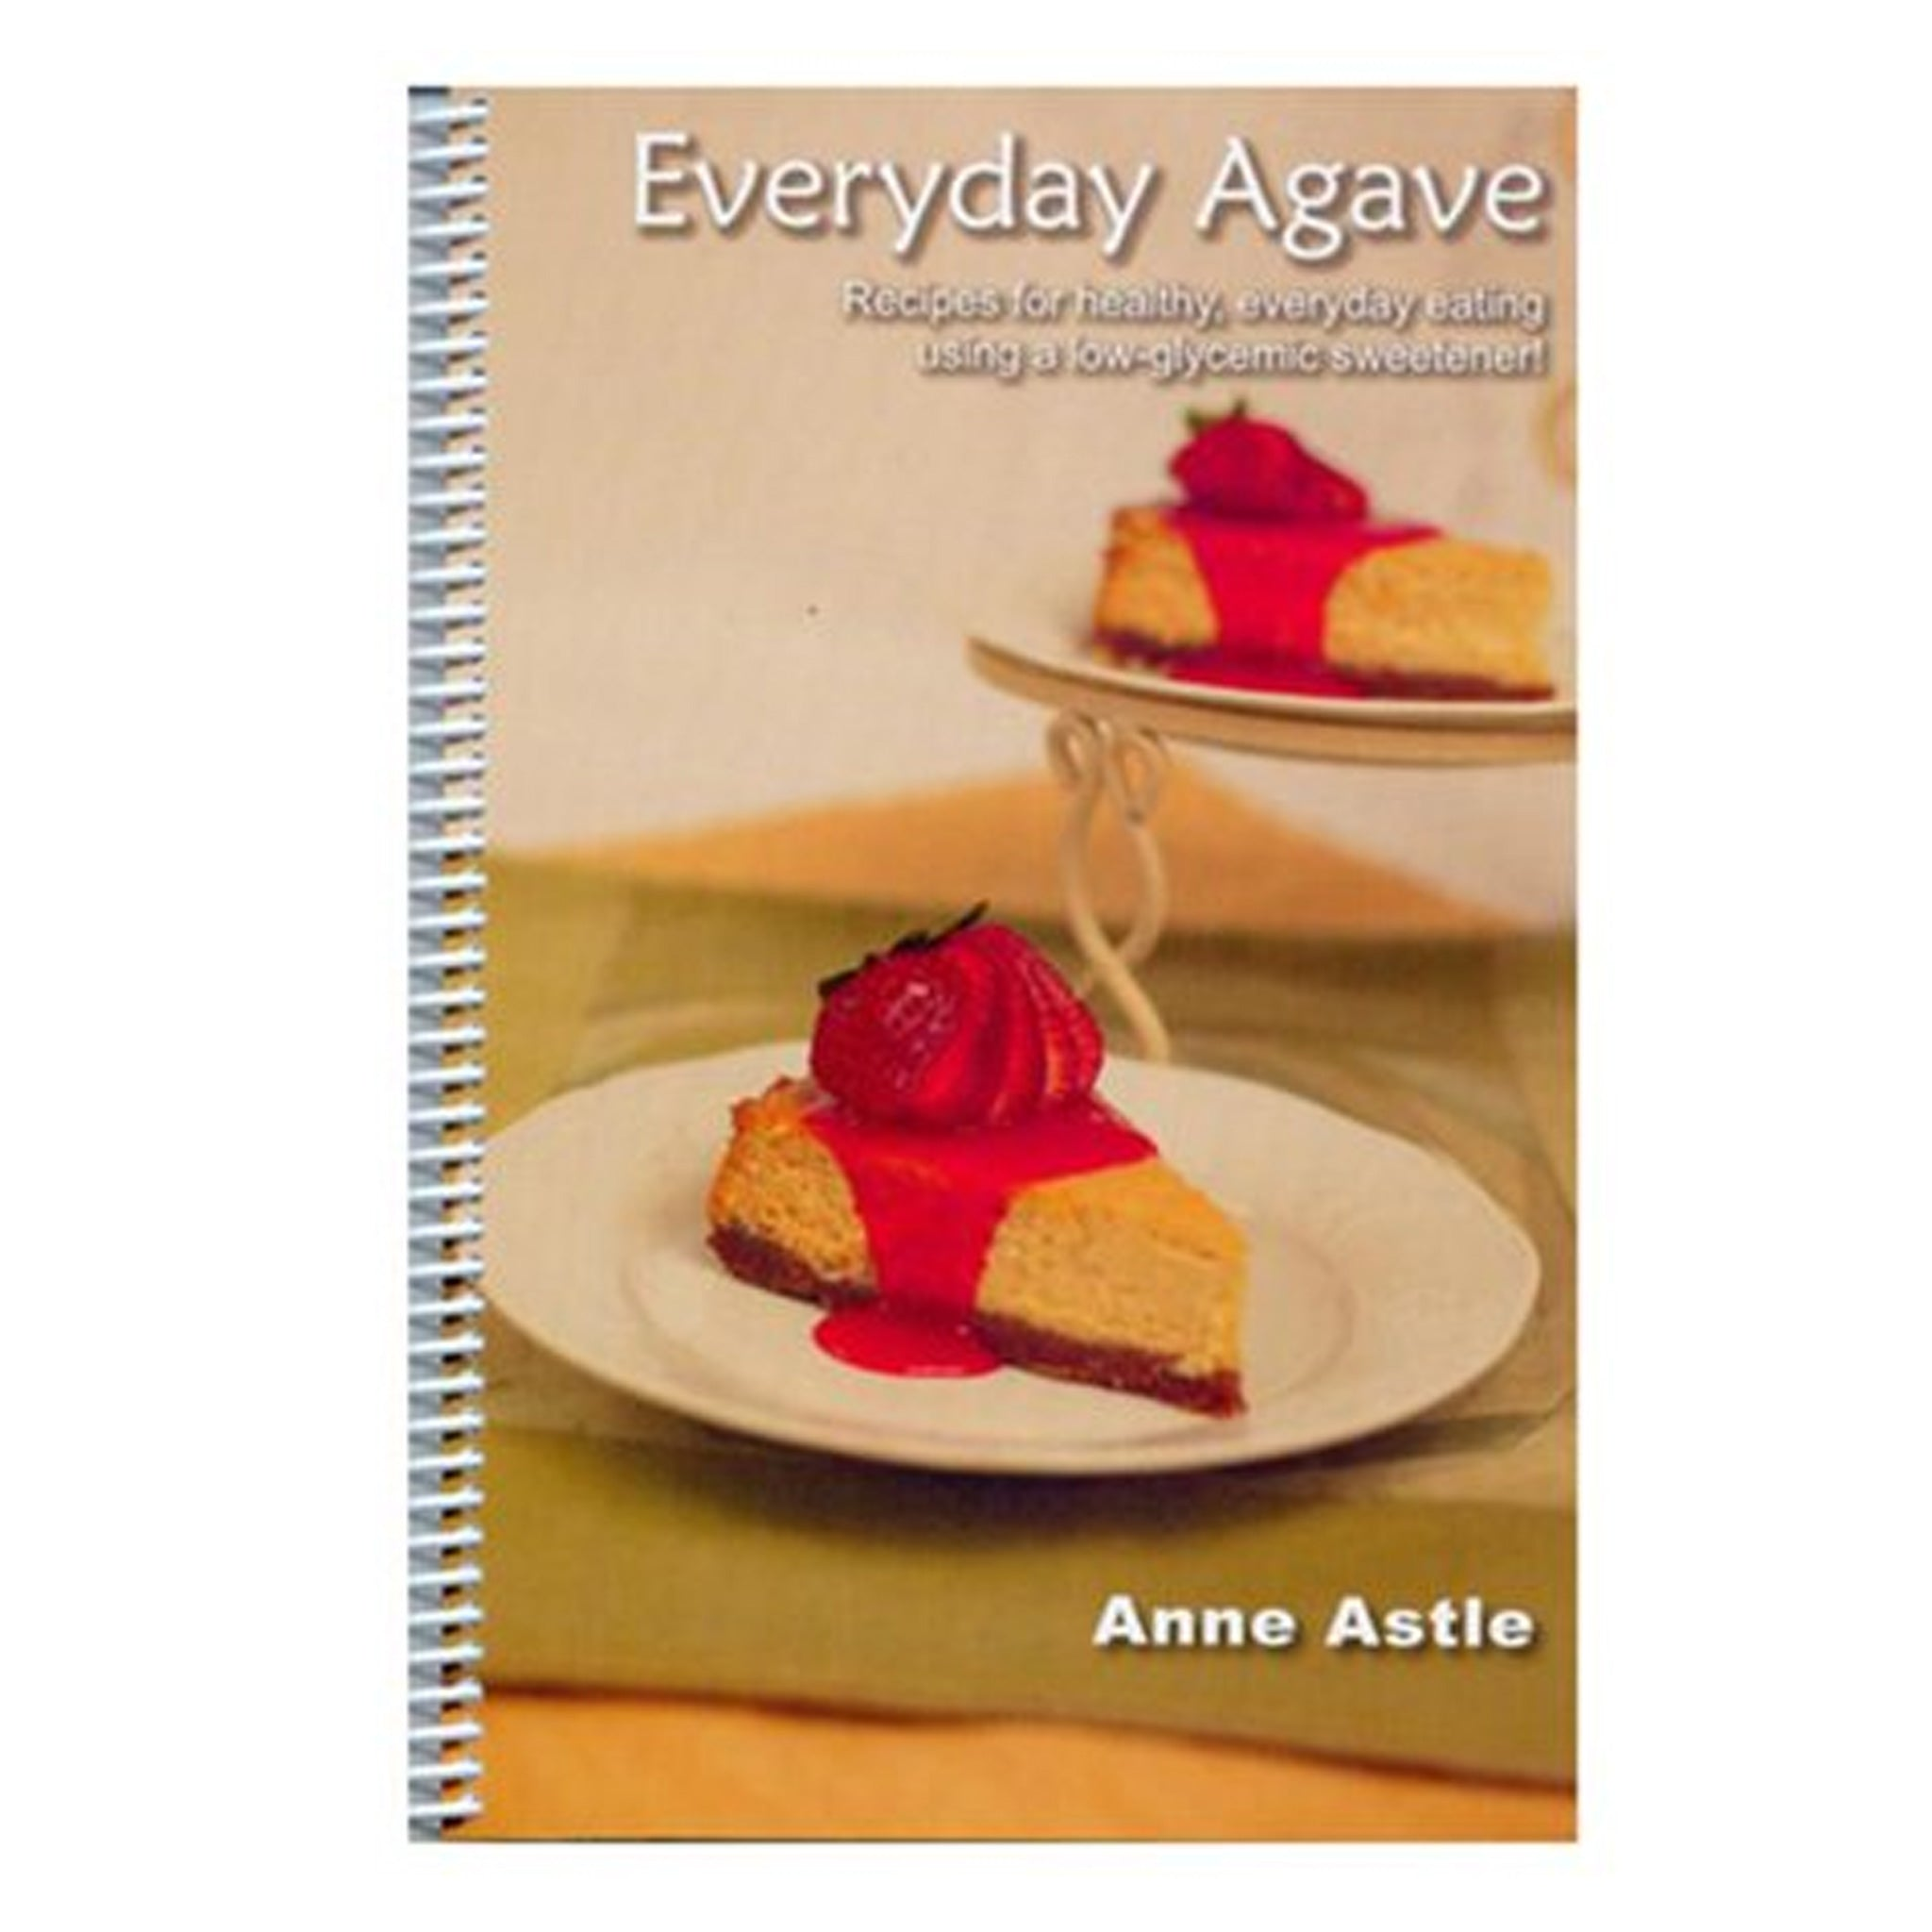 Everyday Agave by Anne Astle, GPBAA01 - Tribest